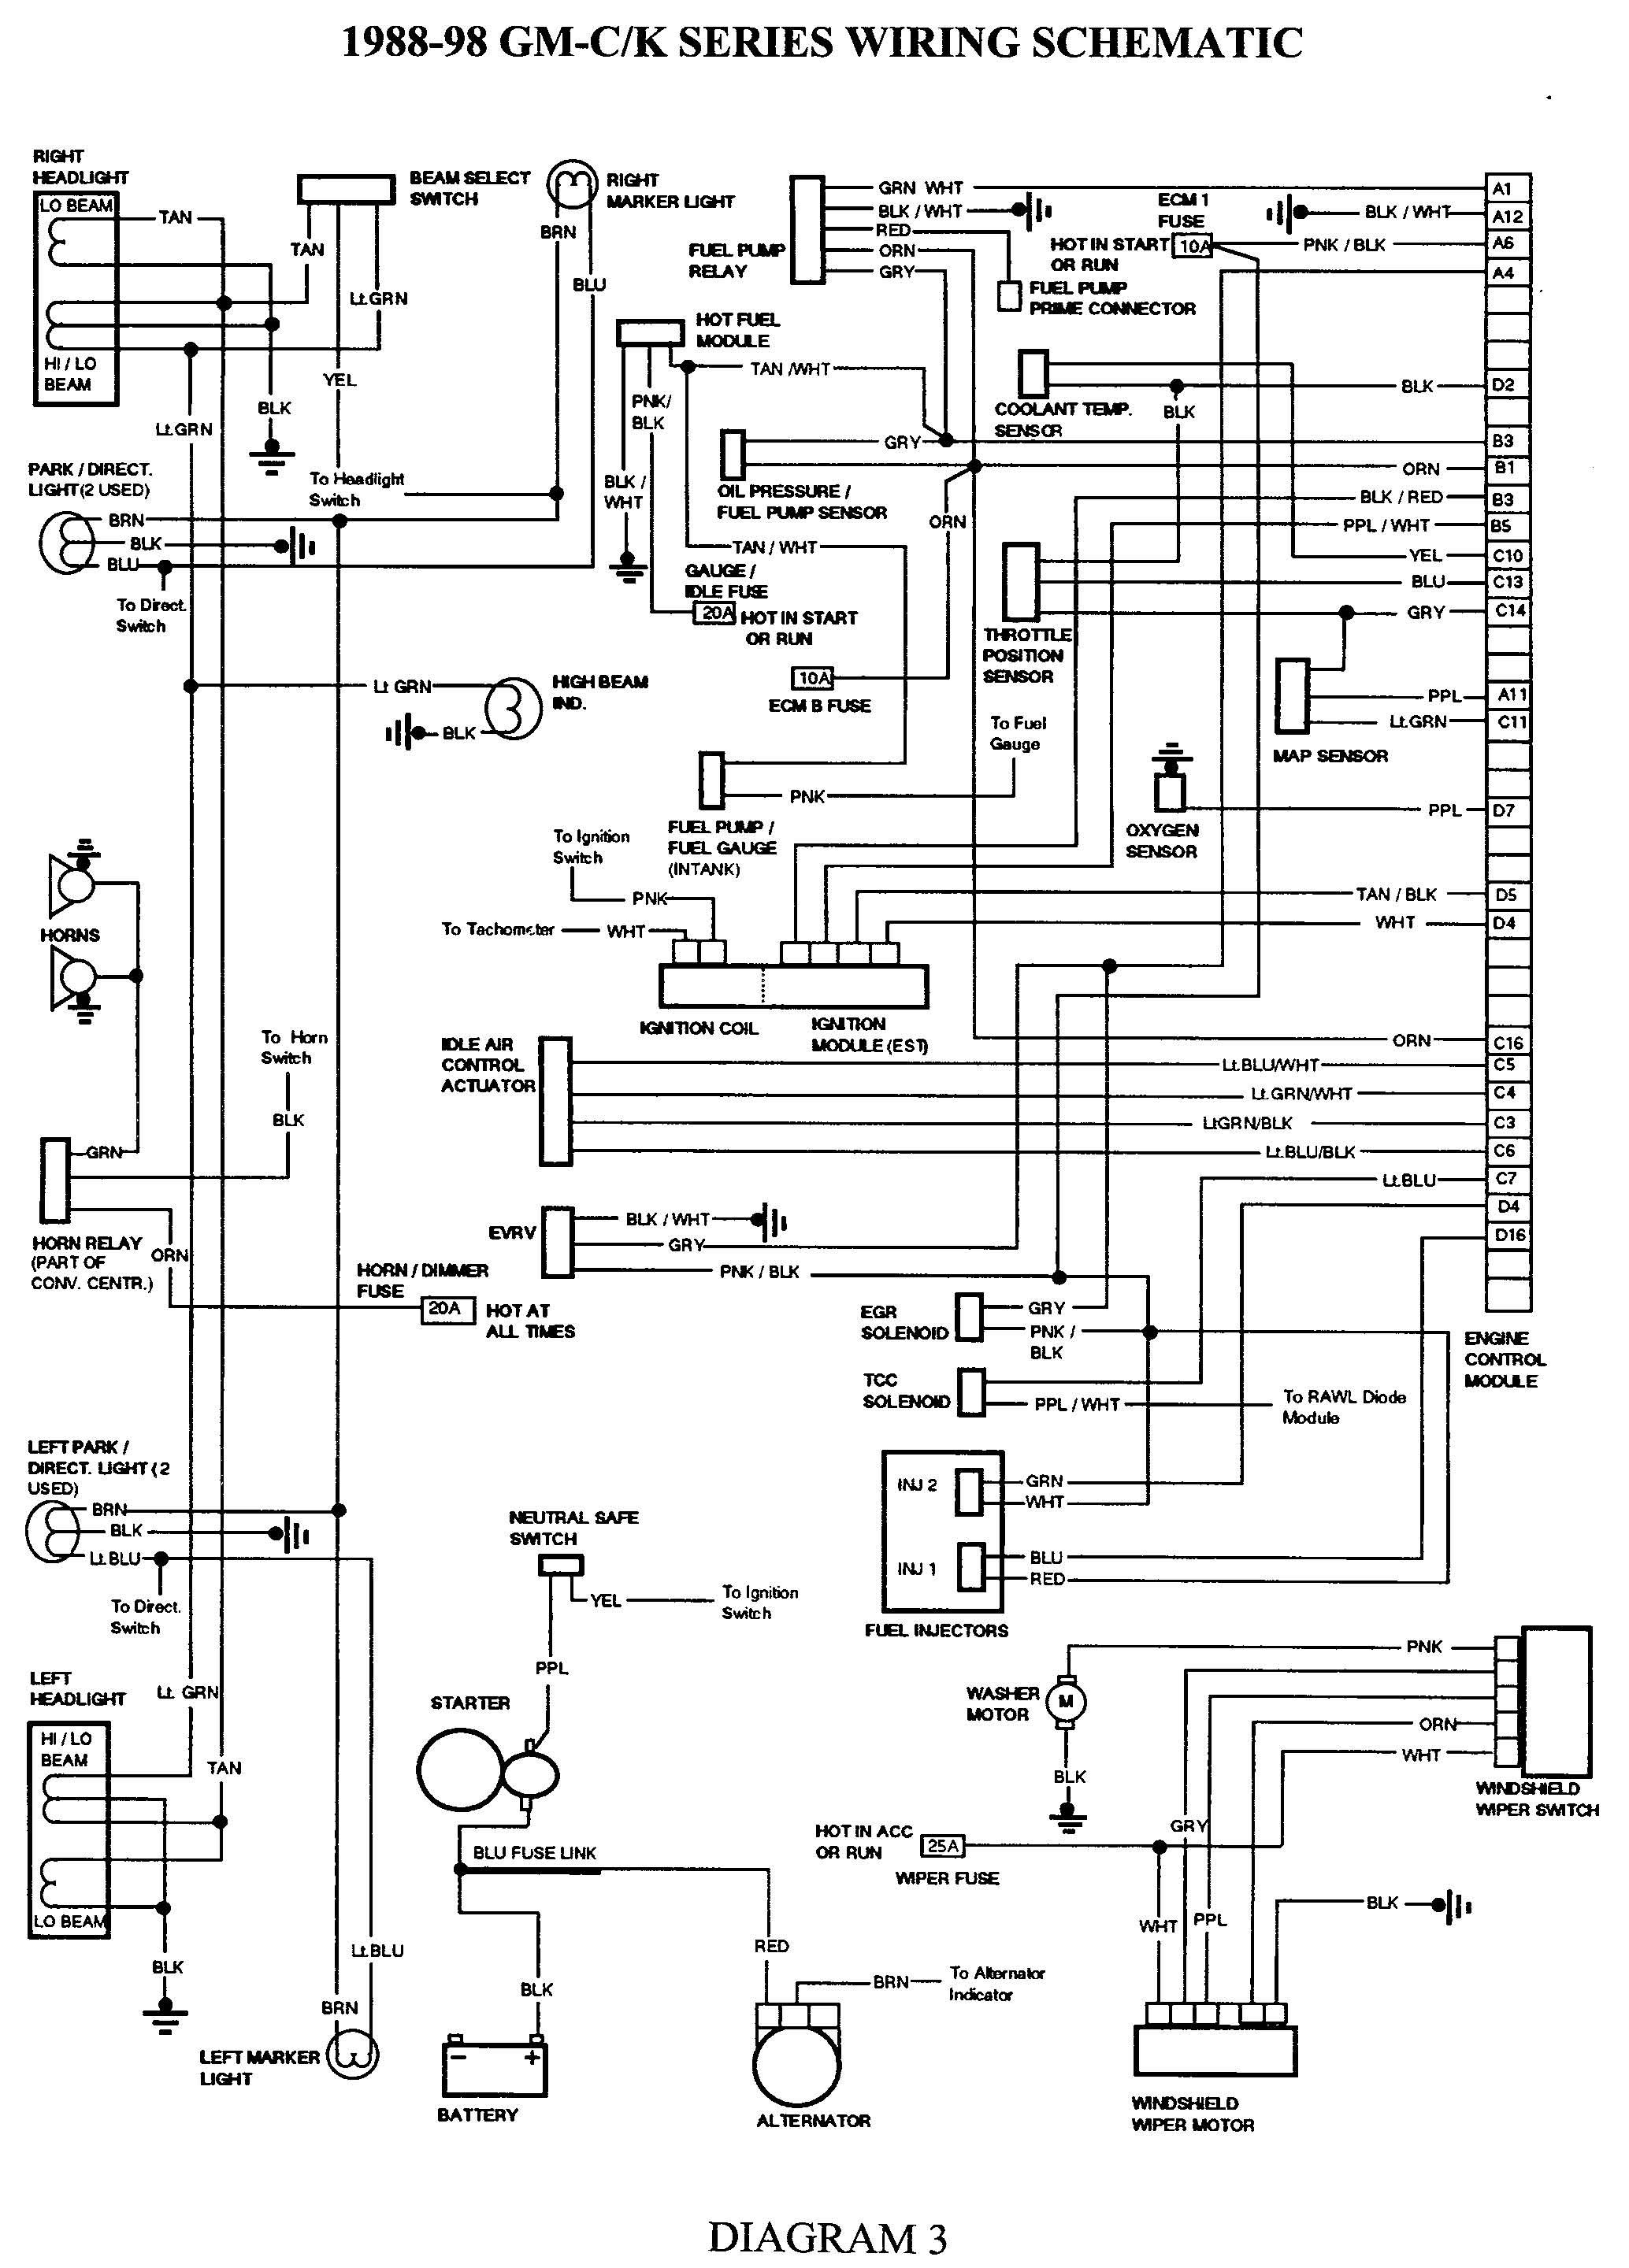 speedometer wire diagram 94 gmc auto electrical wiring diagram rh doesitsuit me 1997 Ford Mustang Wiring Diagram 1987 Ford Mustang Wiring Diagram